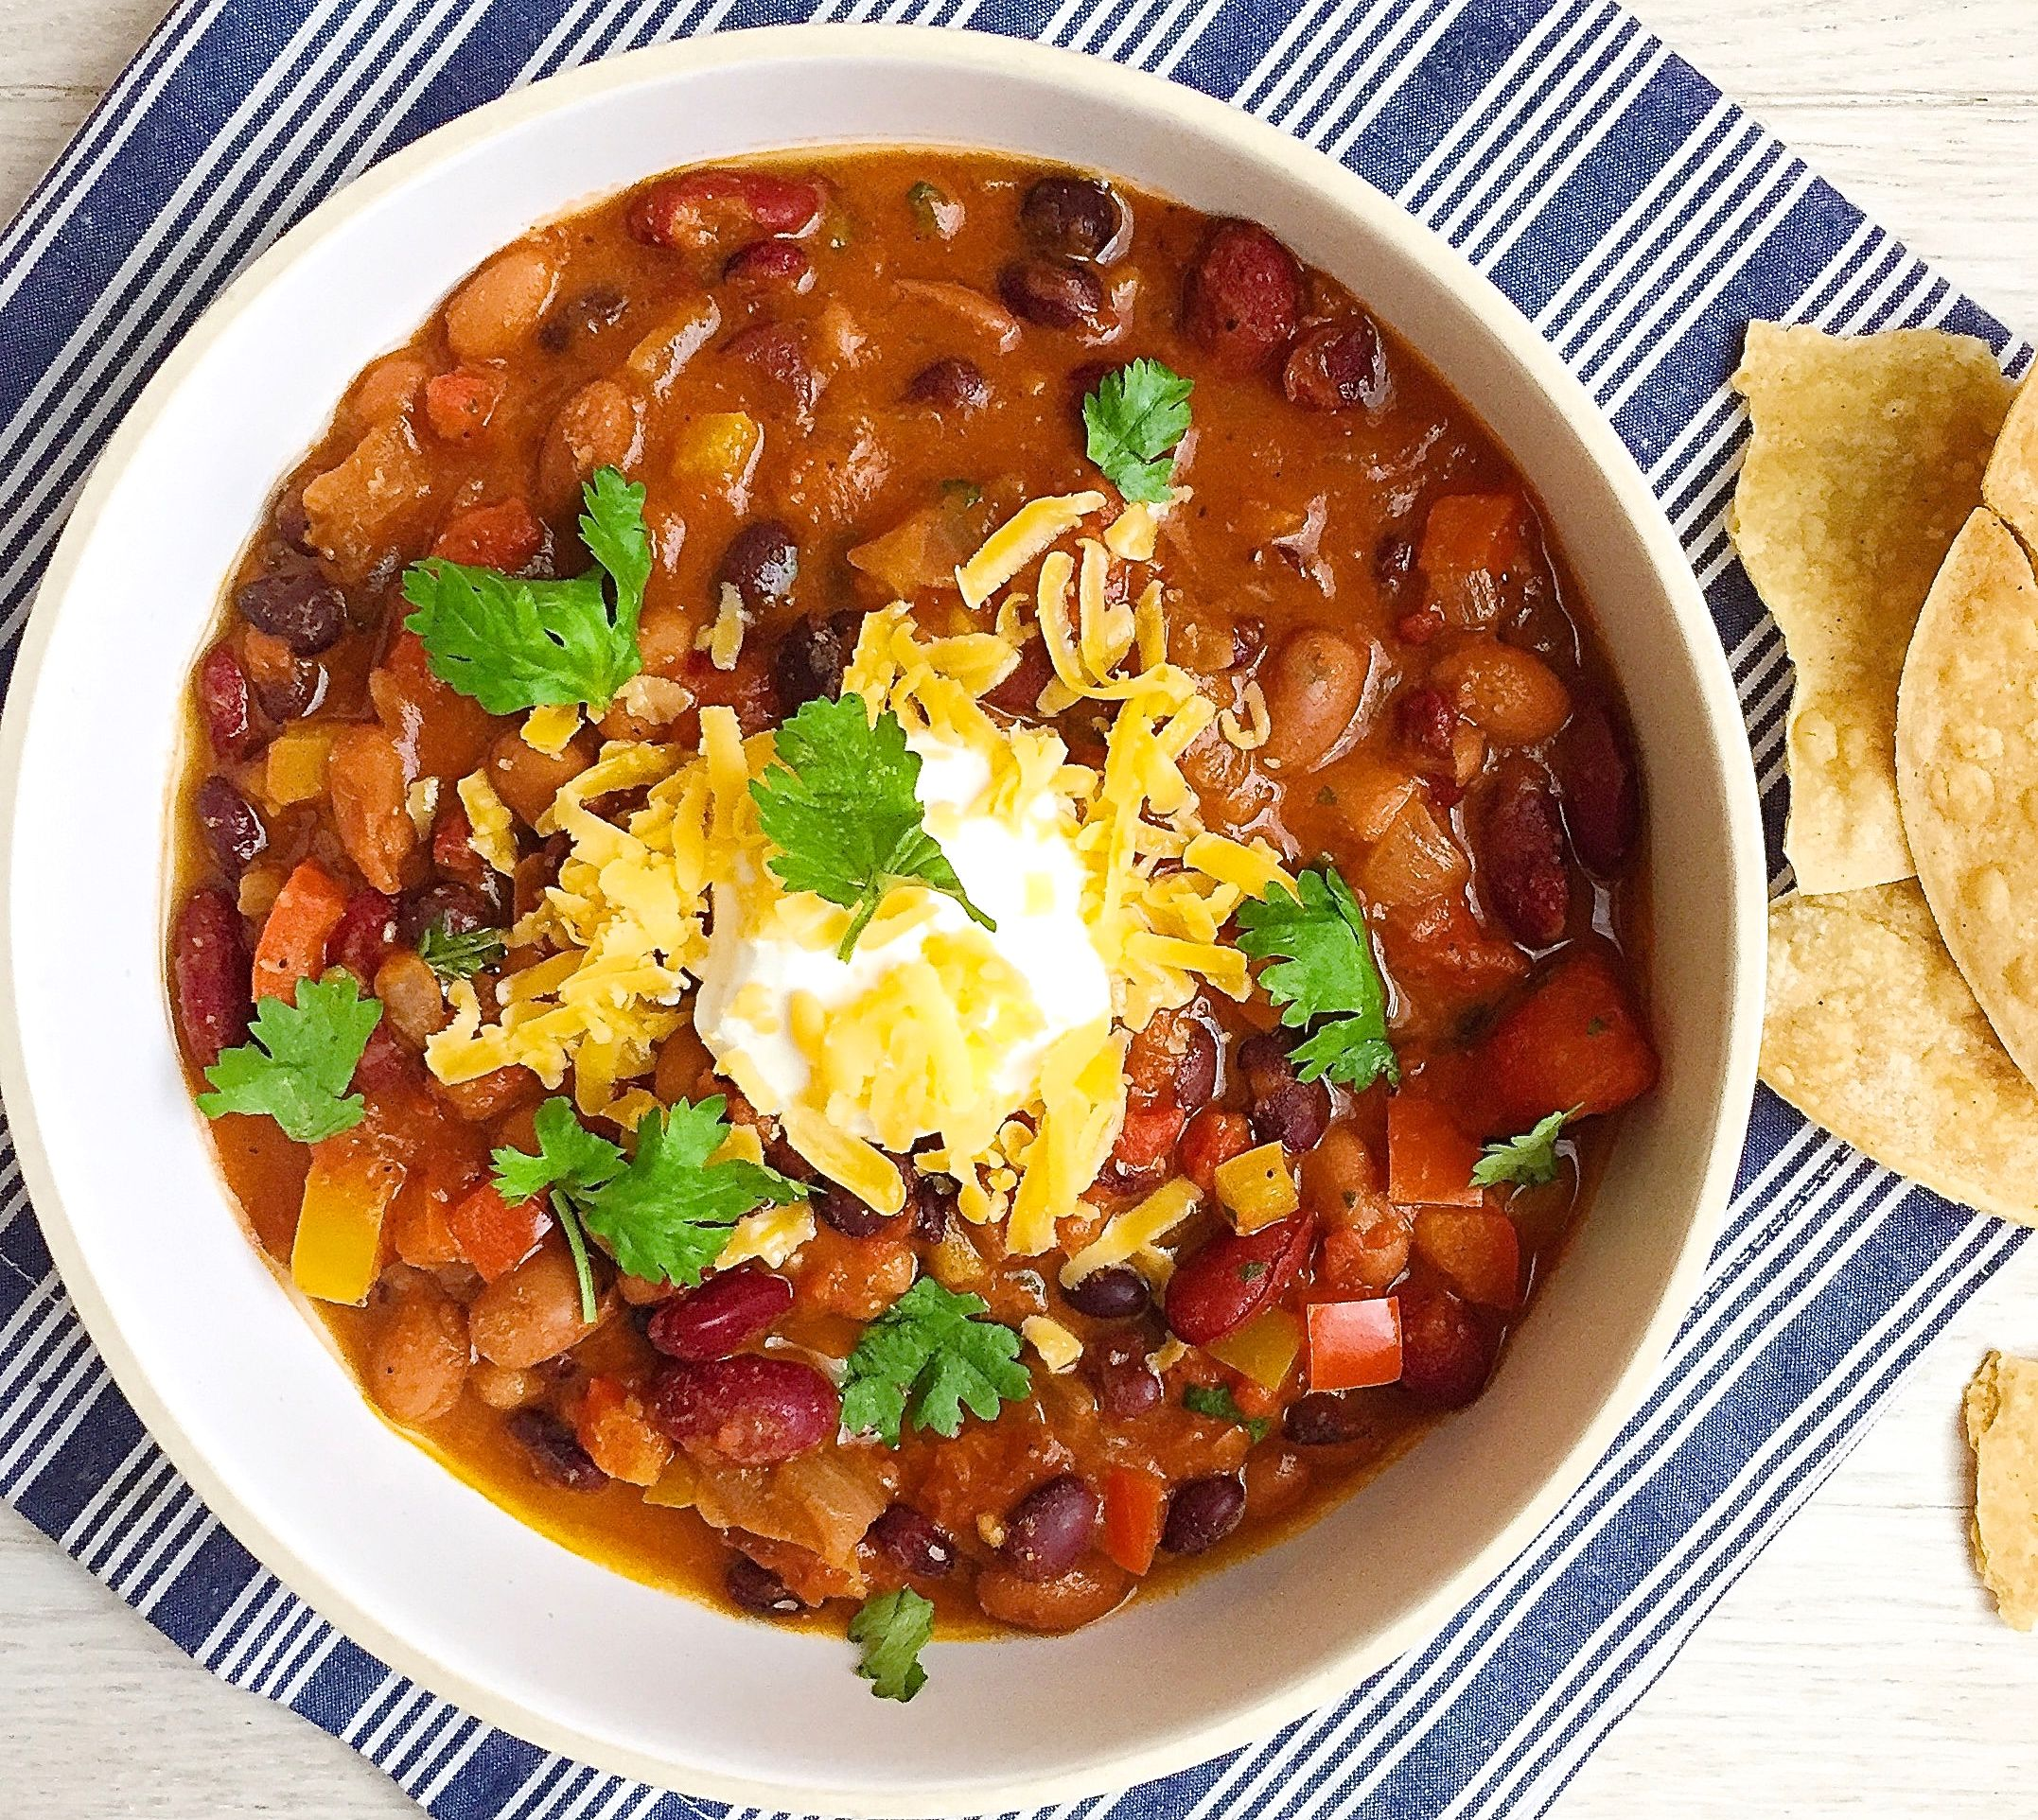 Chili Con Carne Brigitte 27 hearty vegetarian meals fall vegetarian recipe ideas delish com